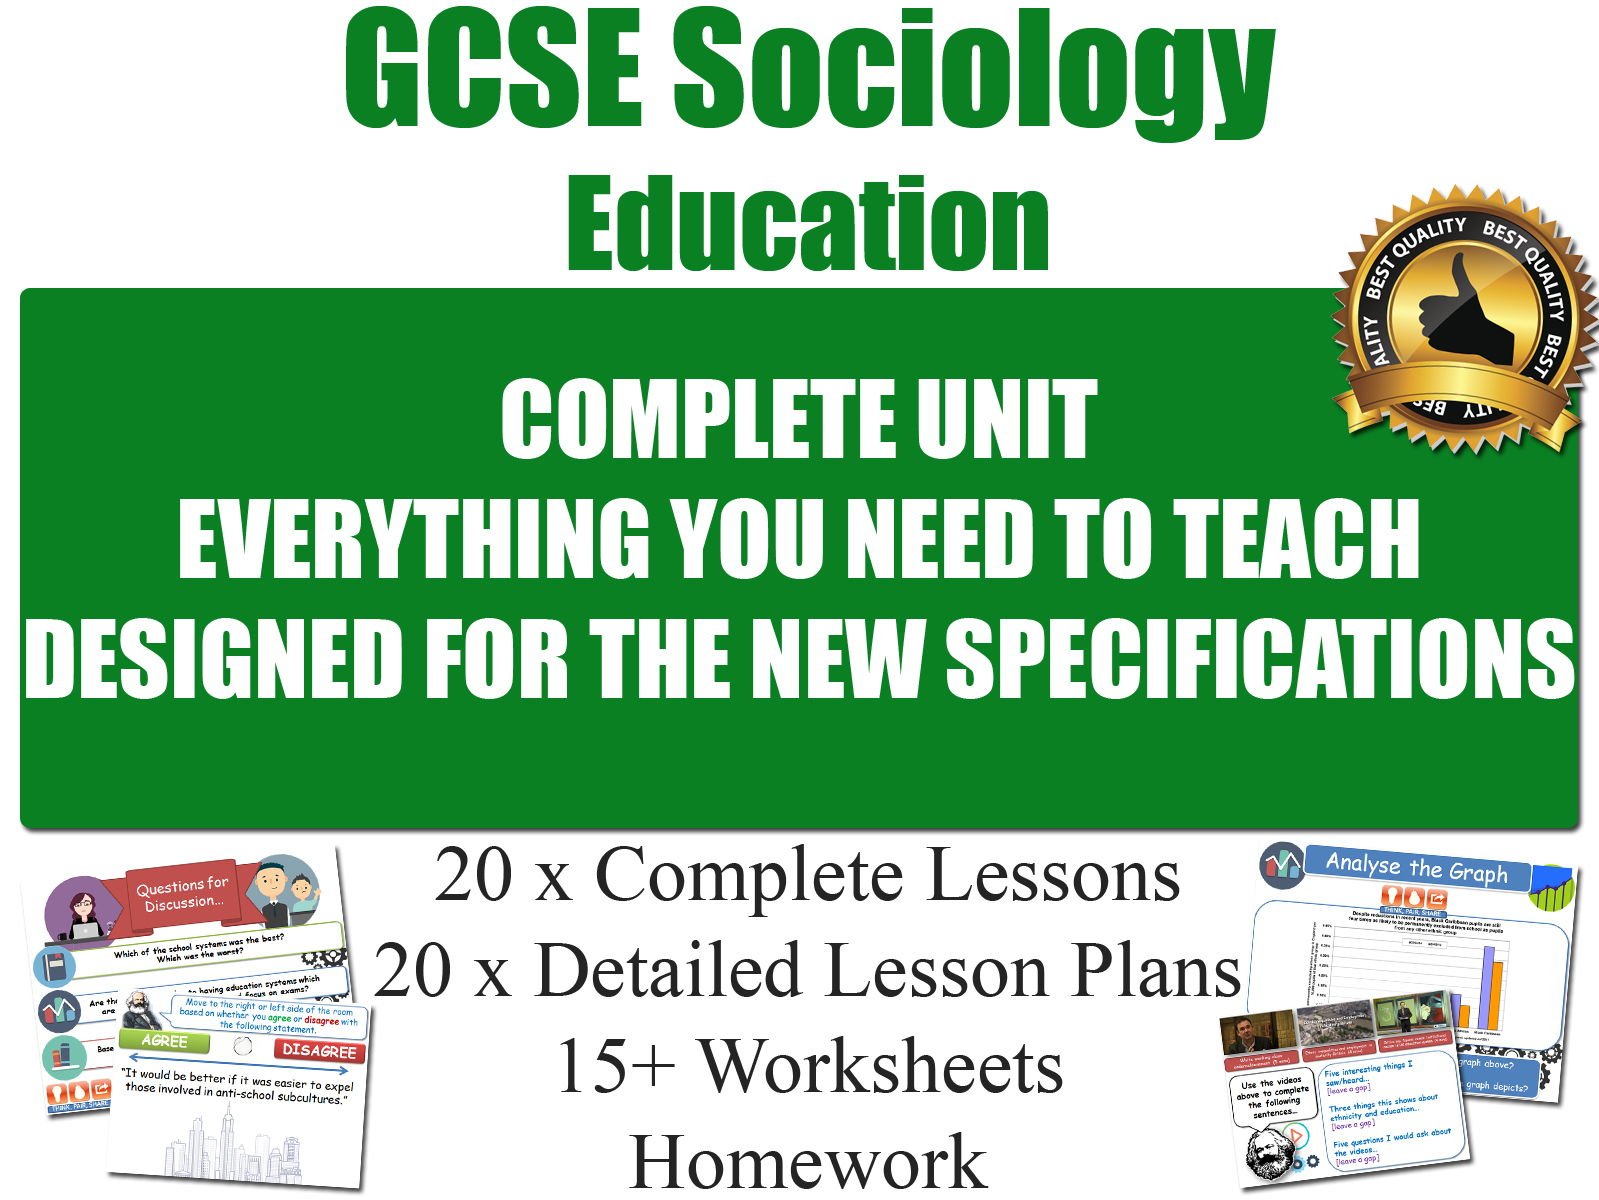 EDUCATION (20 x Lessons, Complete Unit) [ GCSE Sociology ] (Full Resources)